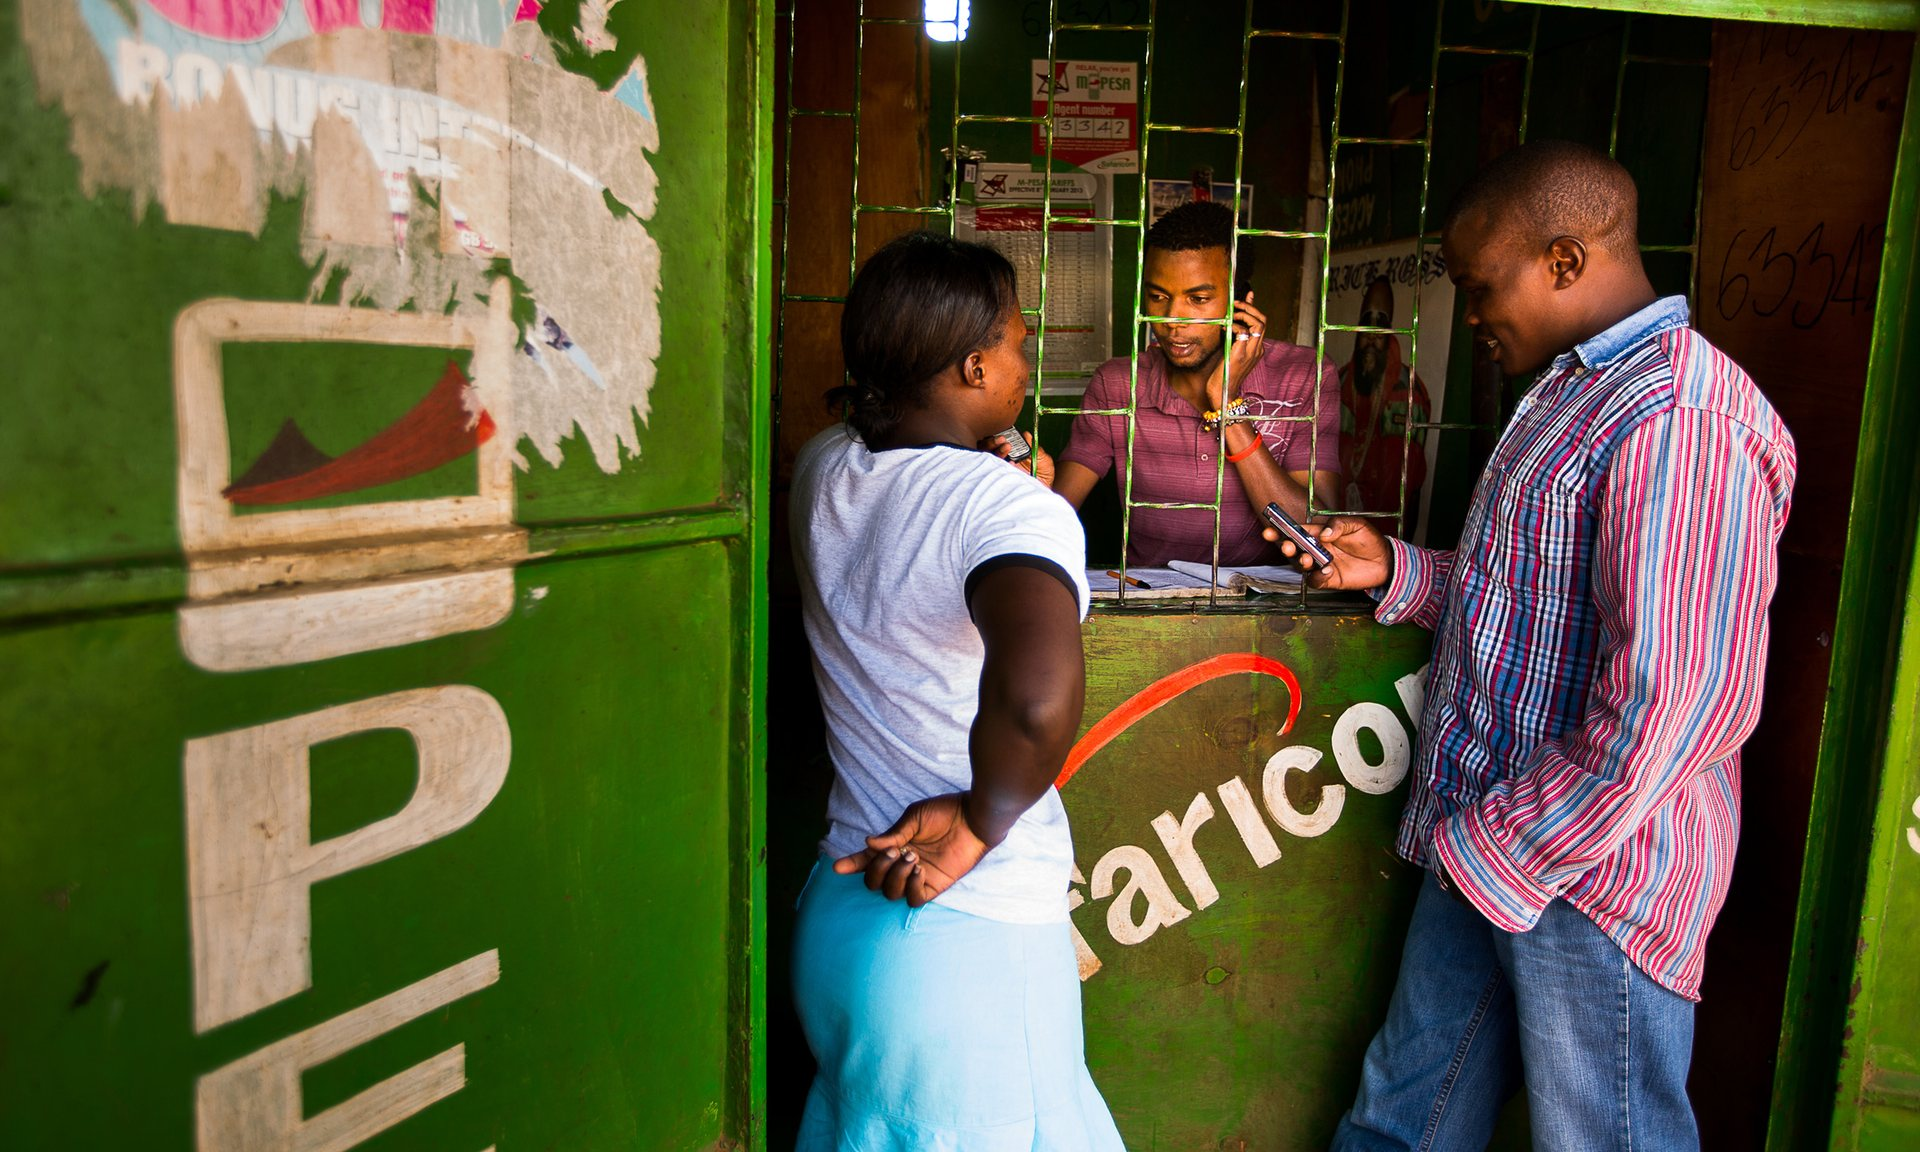 People transfer money using the M-Pesa mobile banking service at a store in Nairobi, Kenya, in 2013. Photograph: Bloomberg via Getty Images